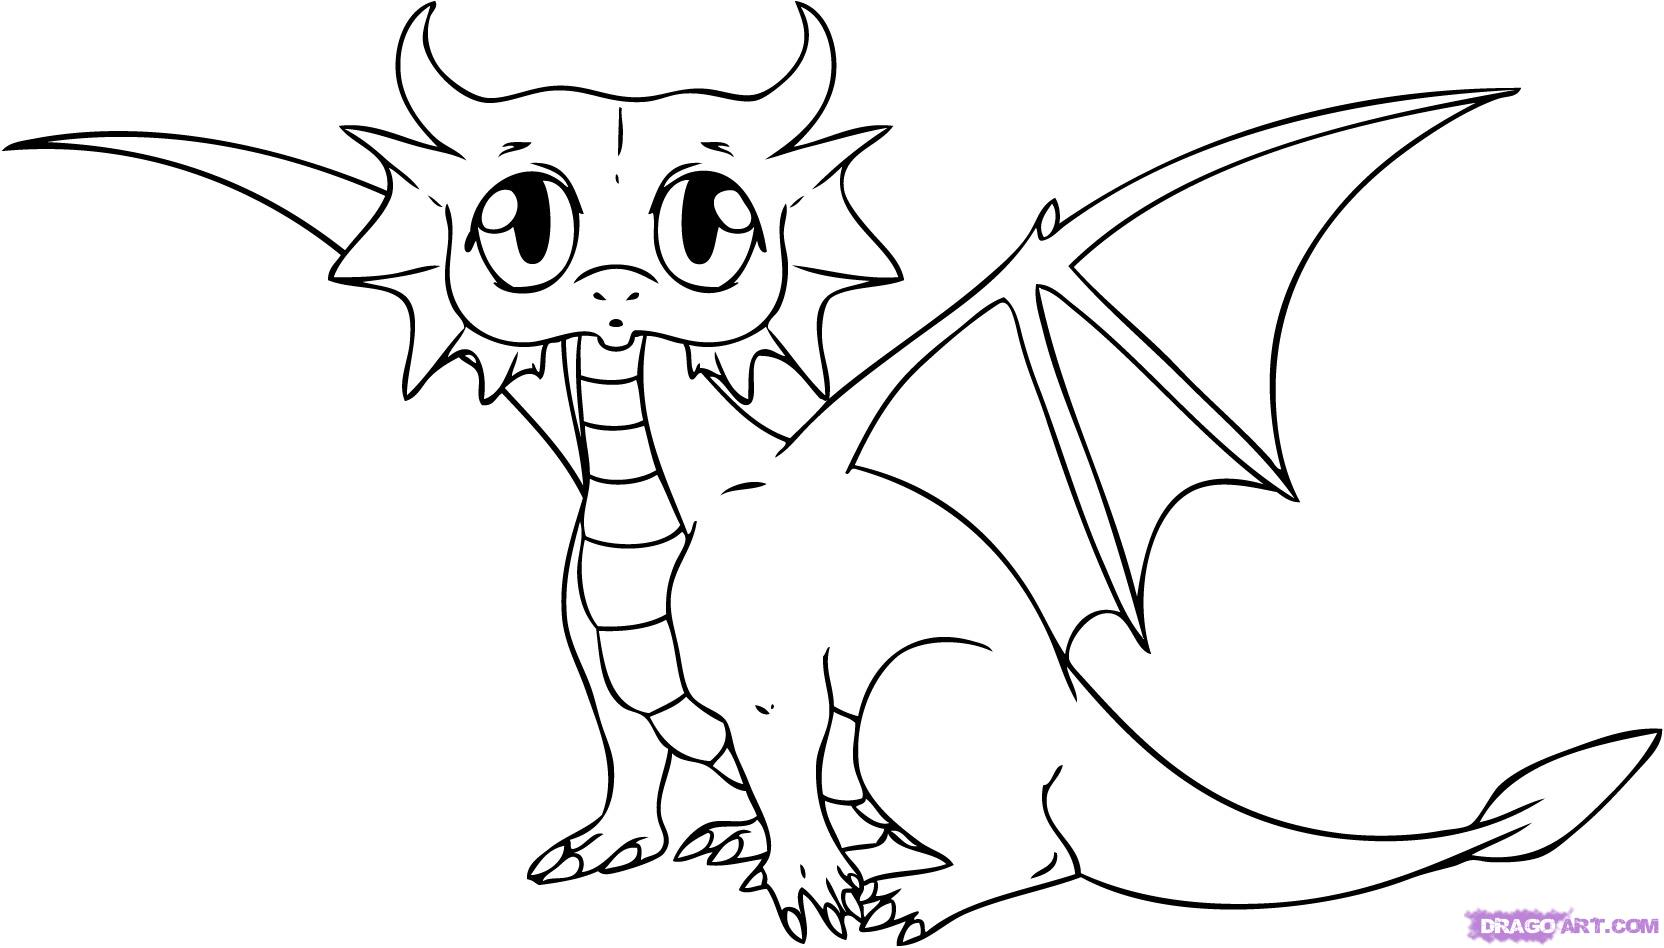 How To Draw A Cartoon Dragon Step By Step Dragons Draw